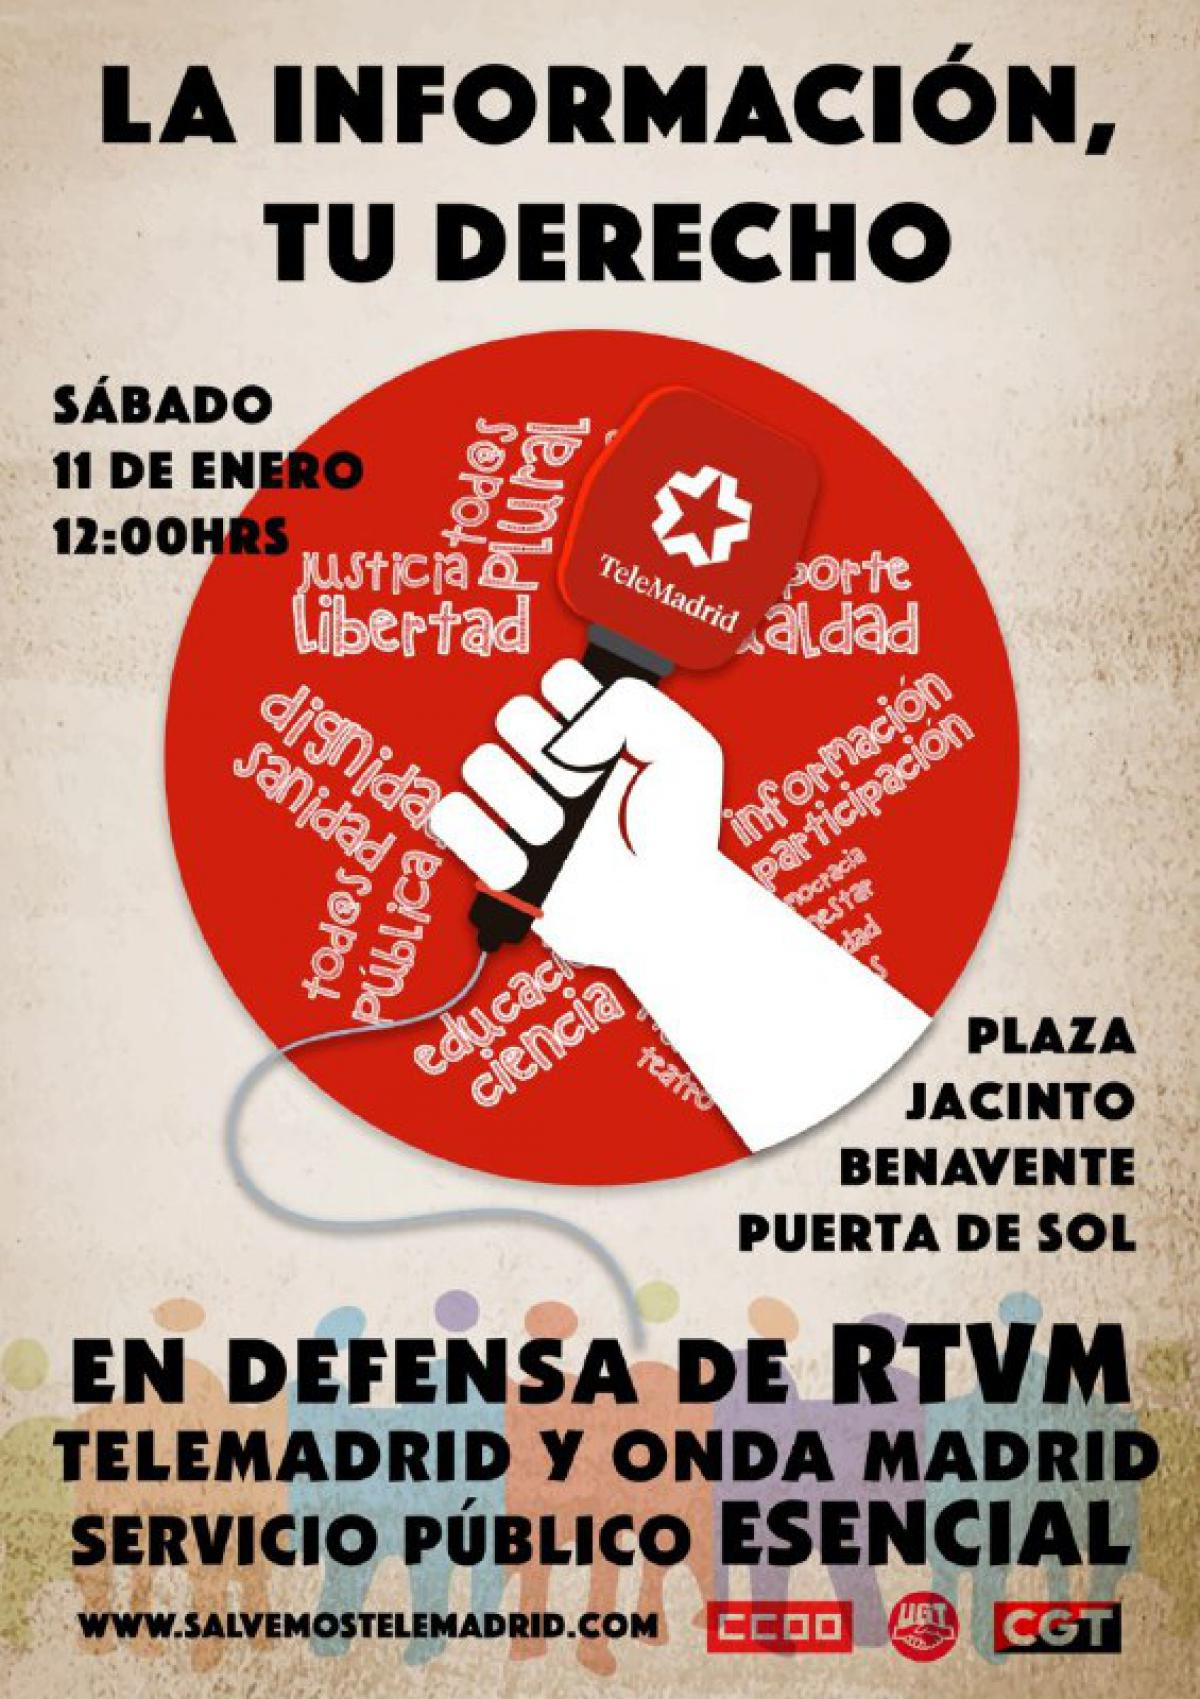 Cartel de la concentración en defensa de RTVM